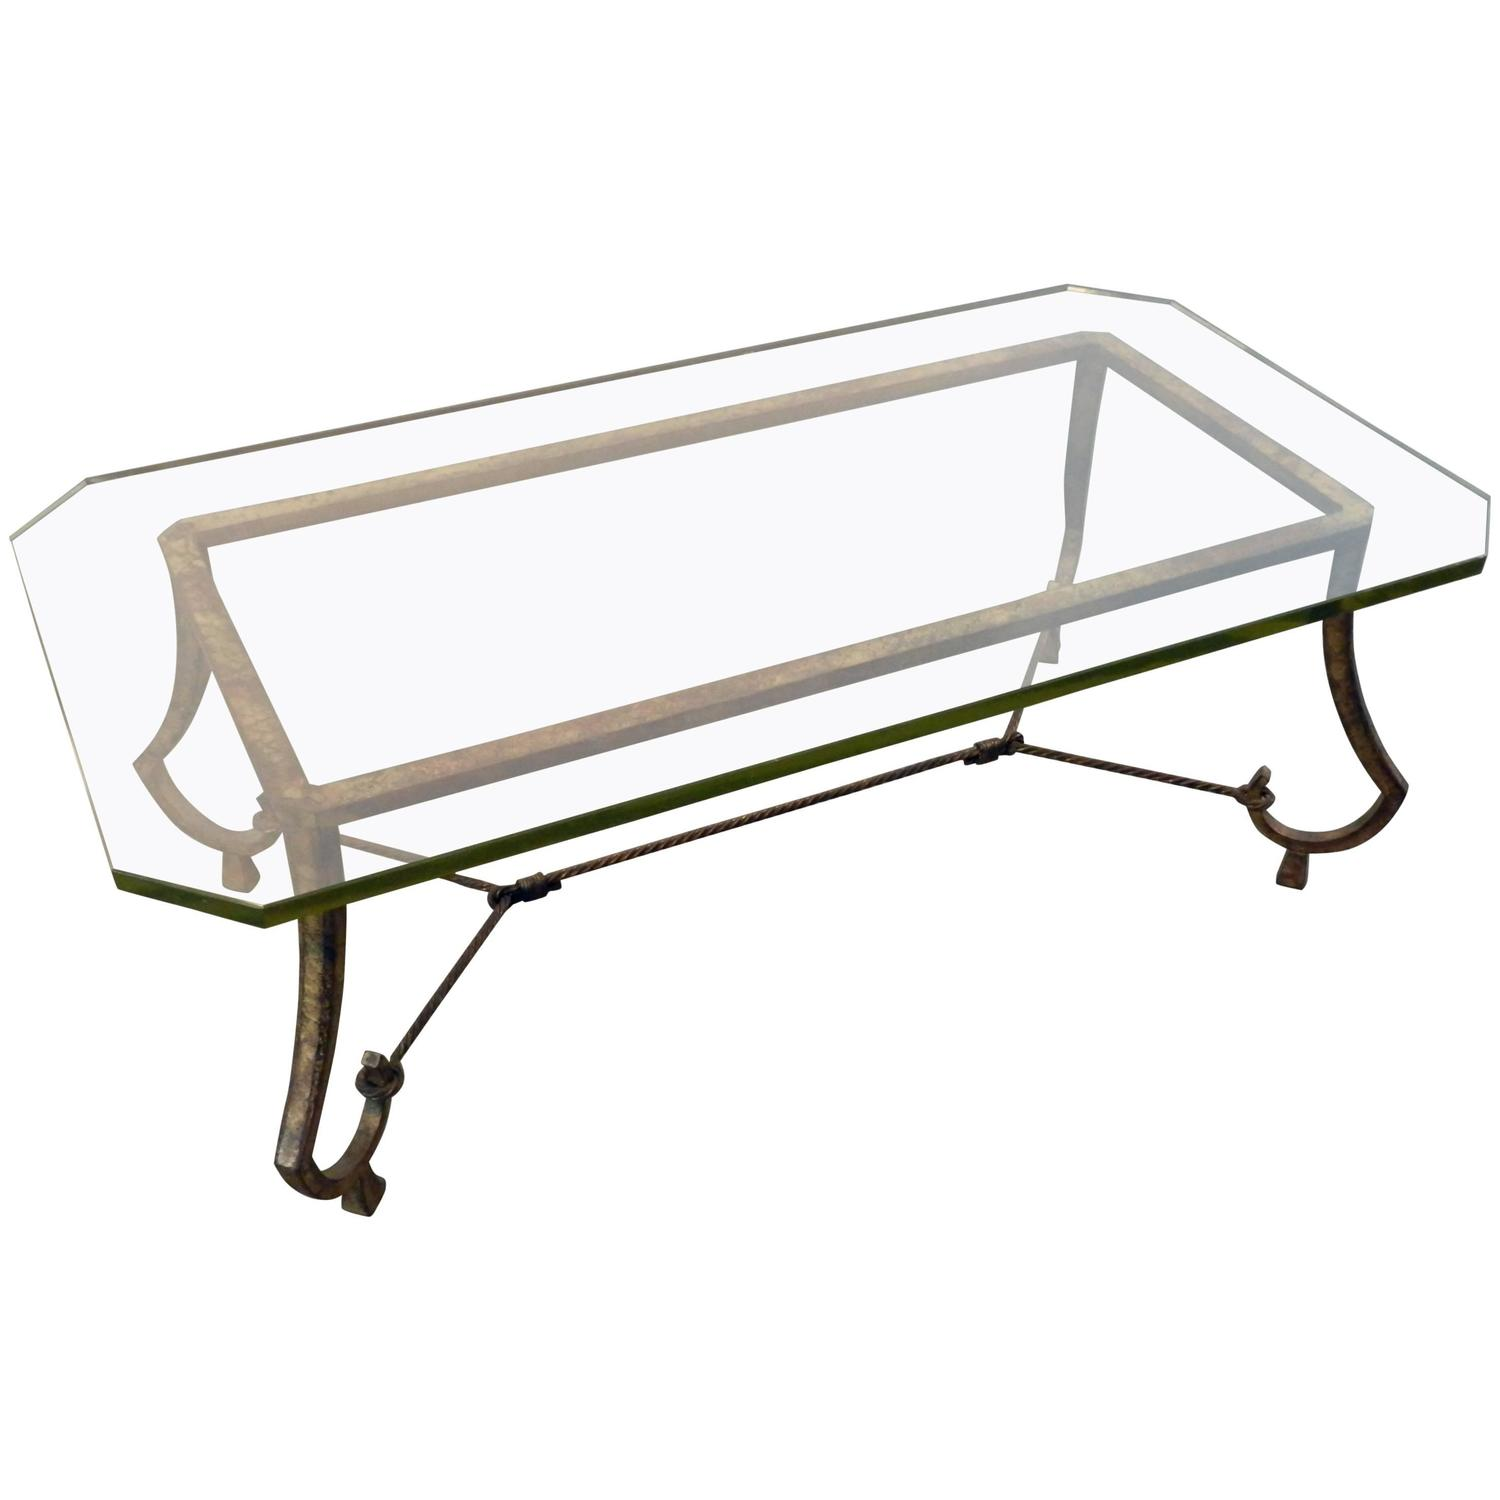 Maison Ramsay Patina Gold Leaf Wrought Iron Coffee Table At 1stdibs